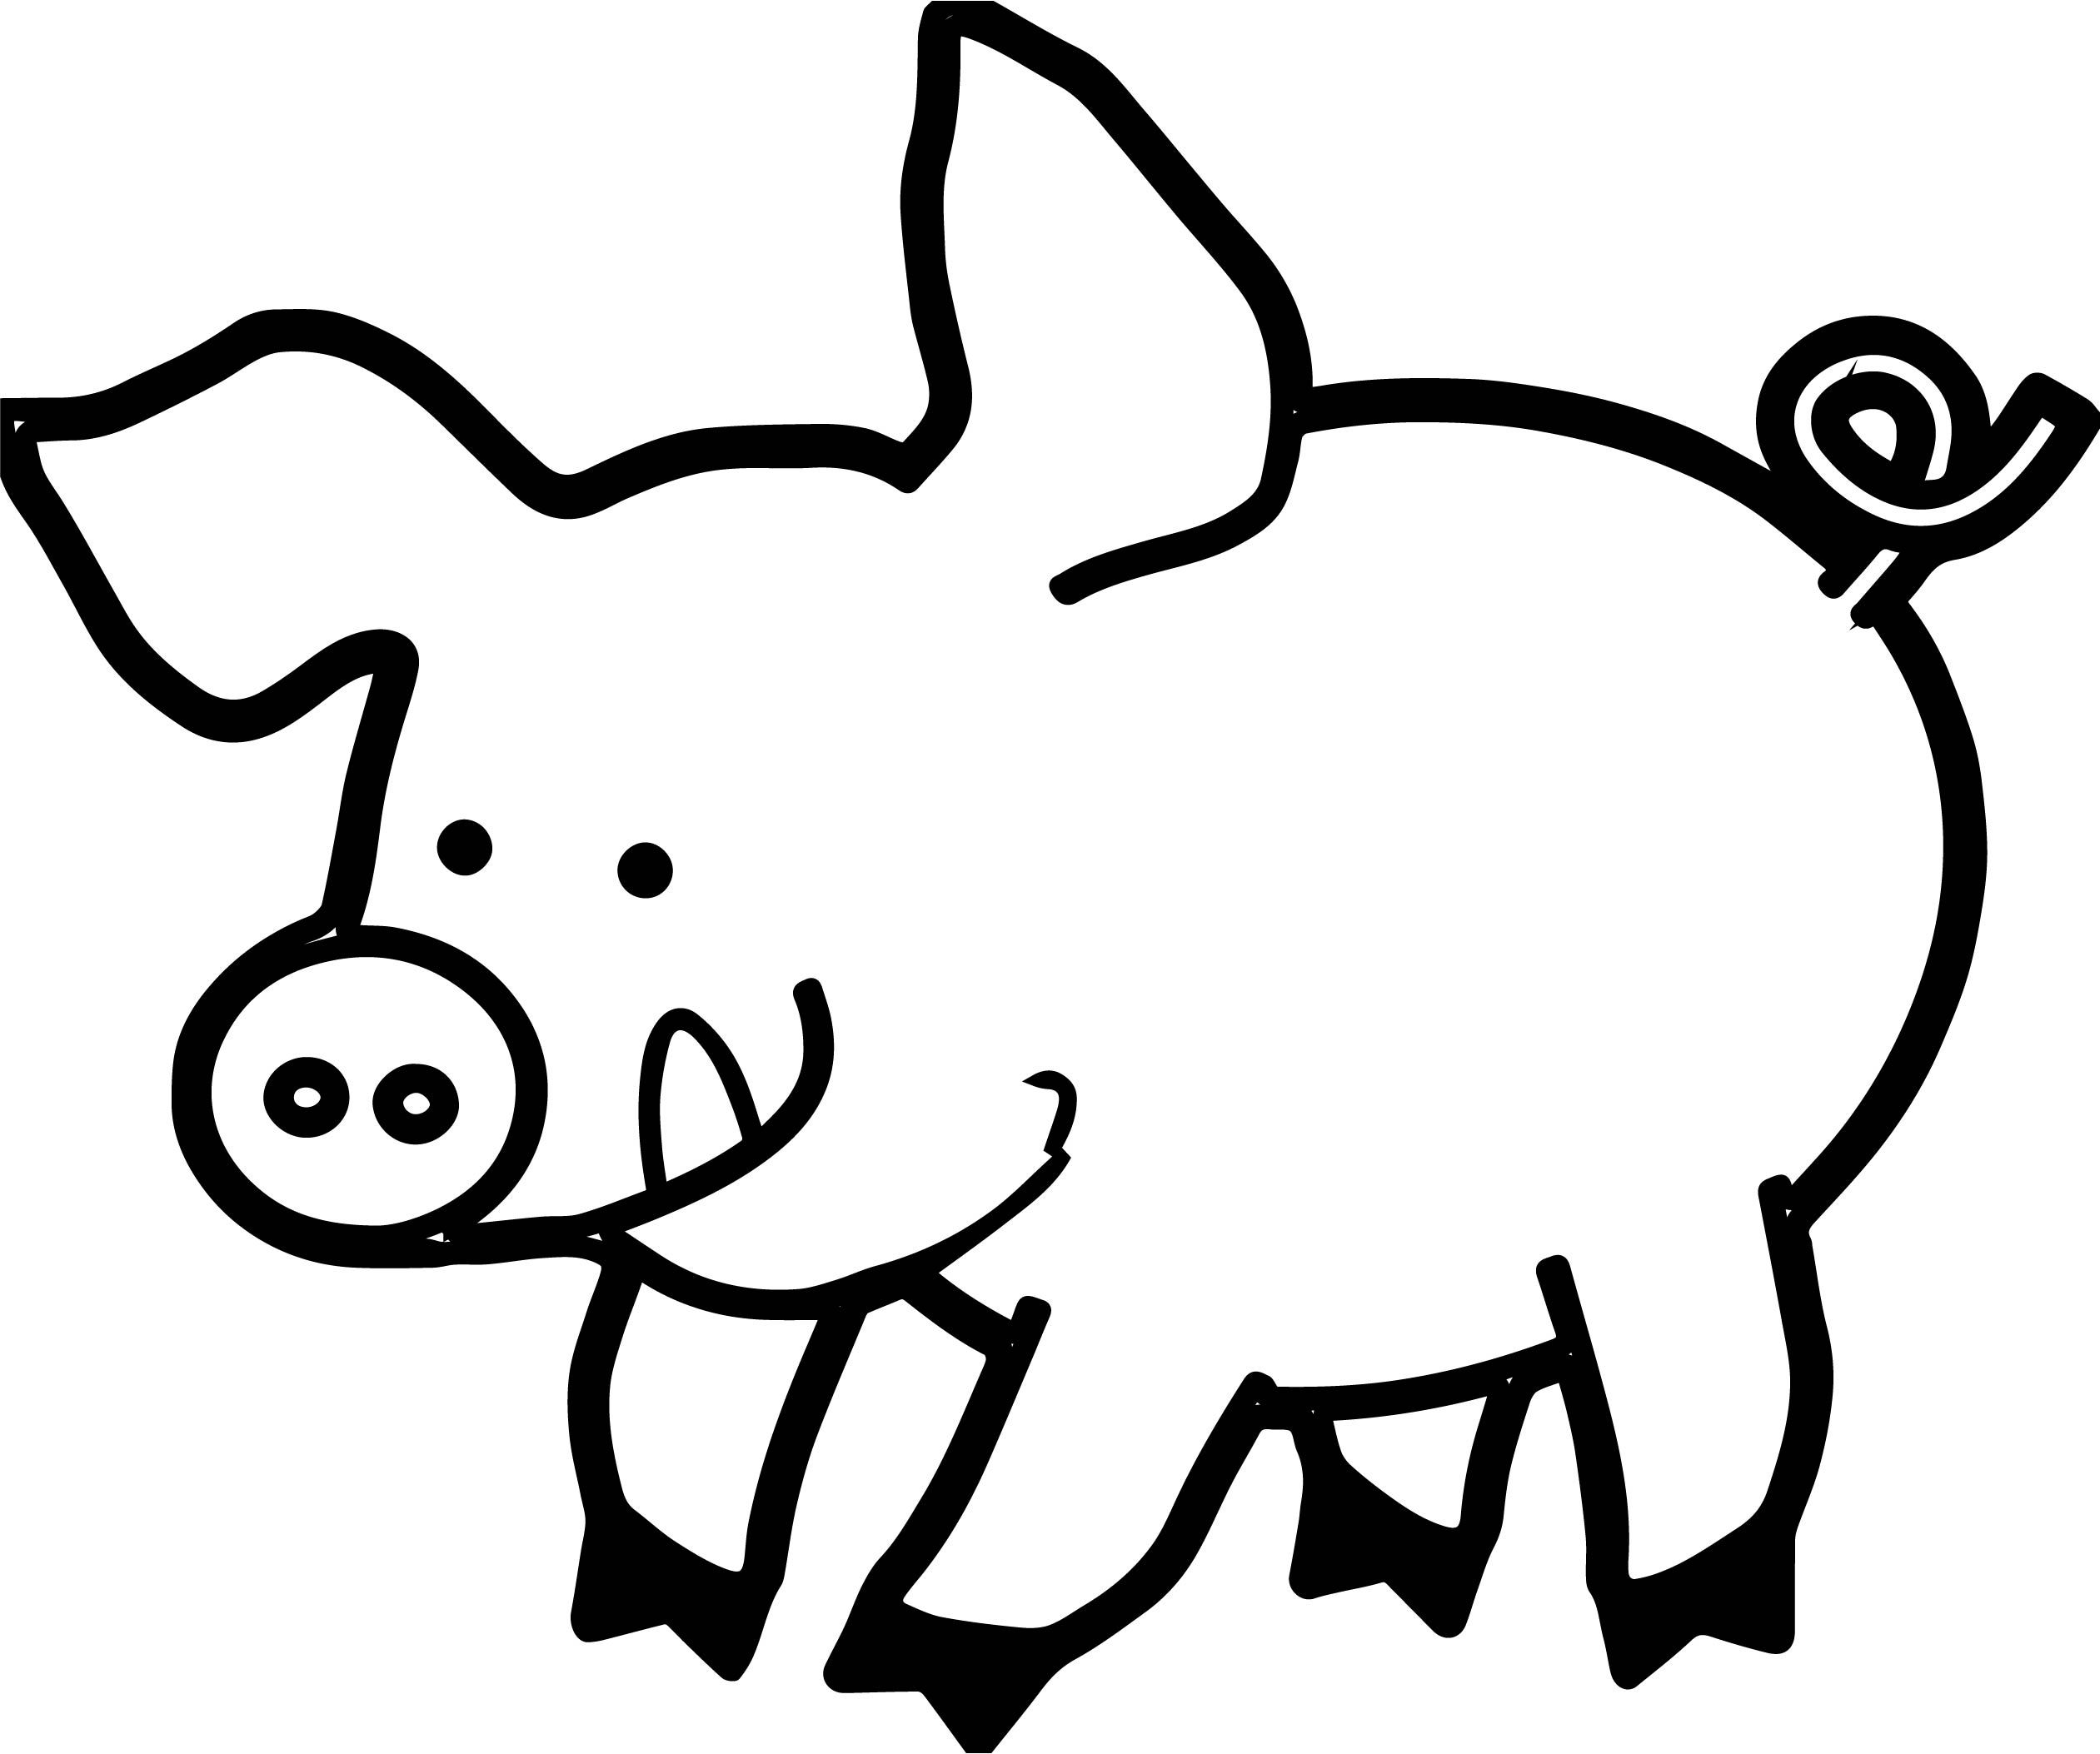 Cool Pig Piglet Coloring Page Coloring Pages Pig Face Drawing Animated Animals